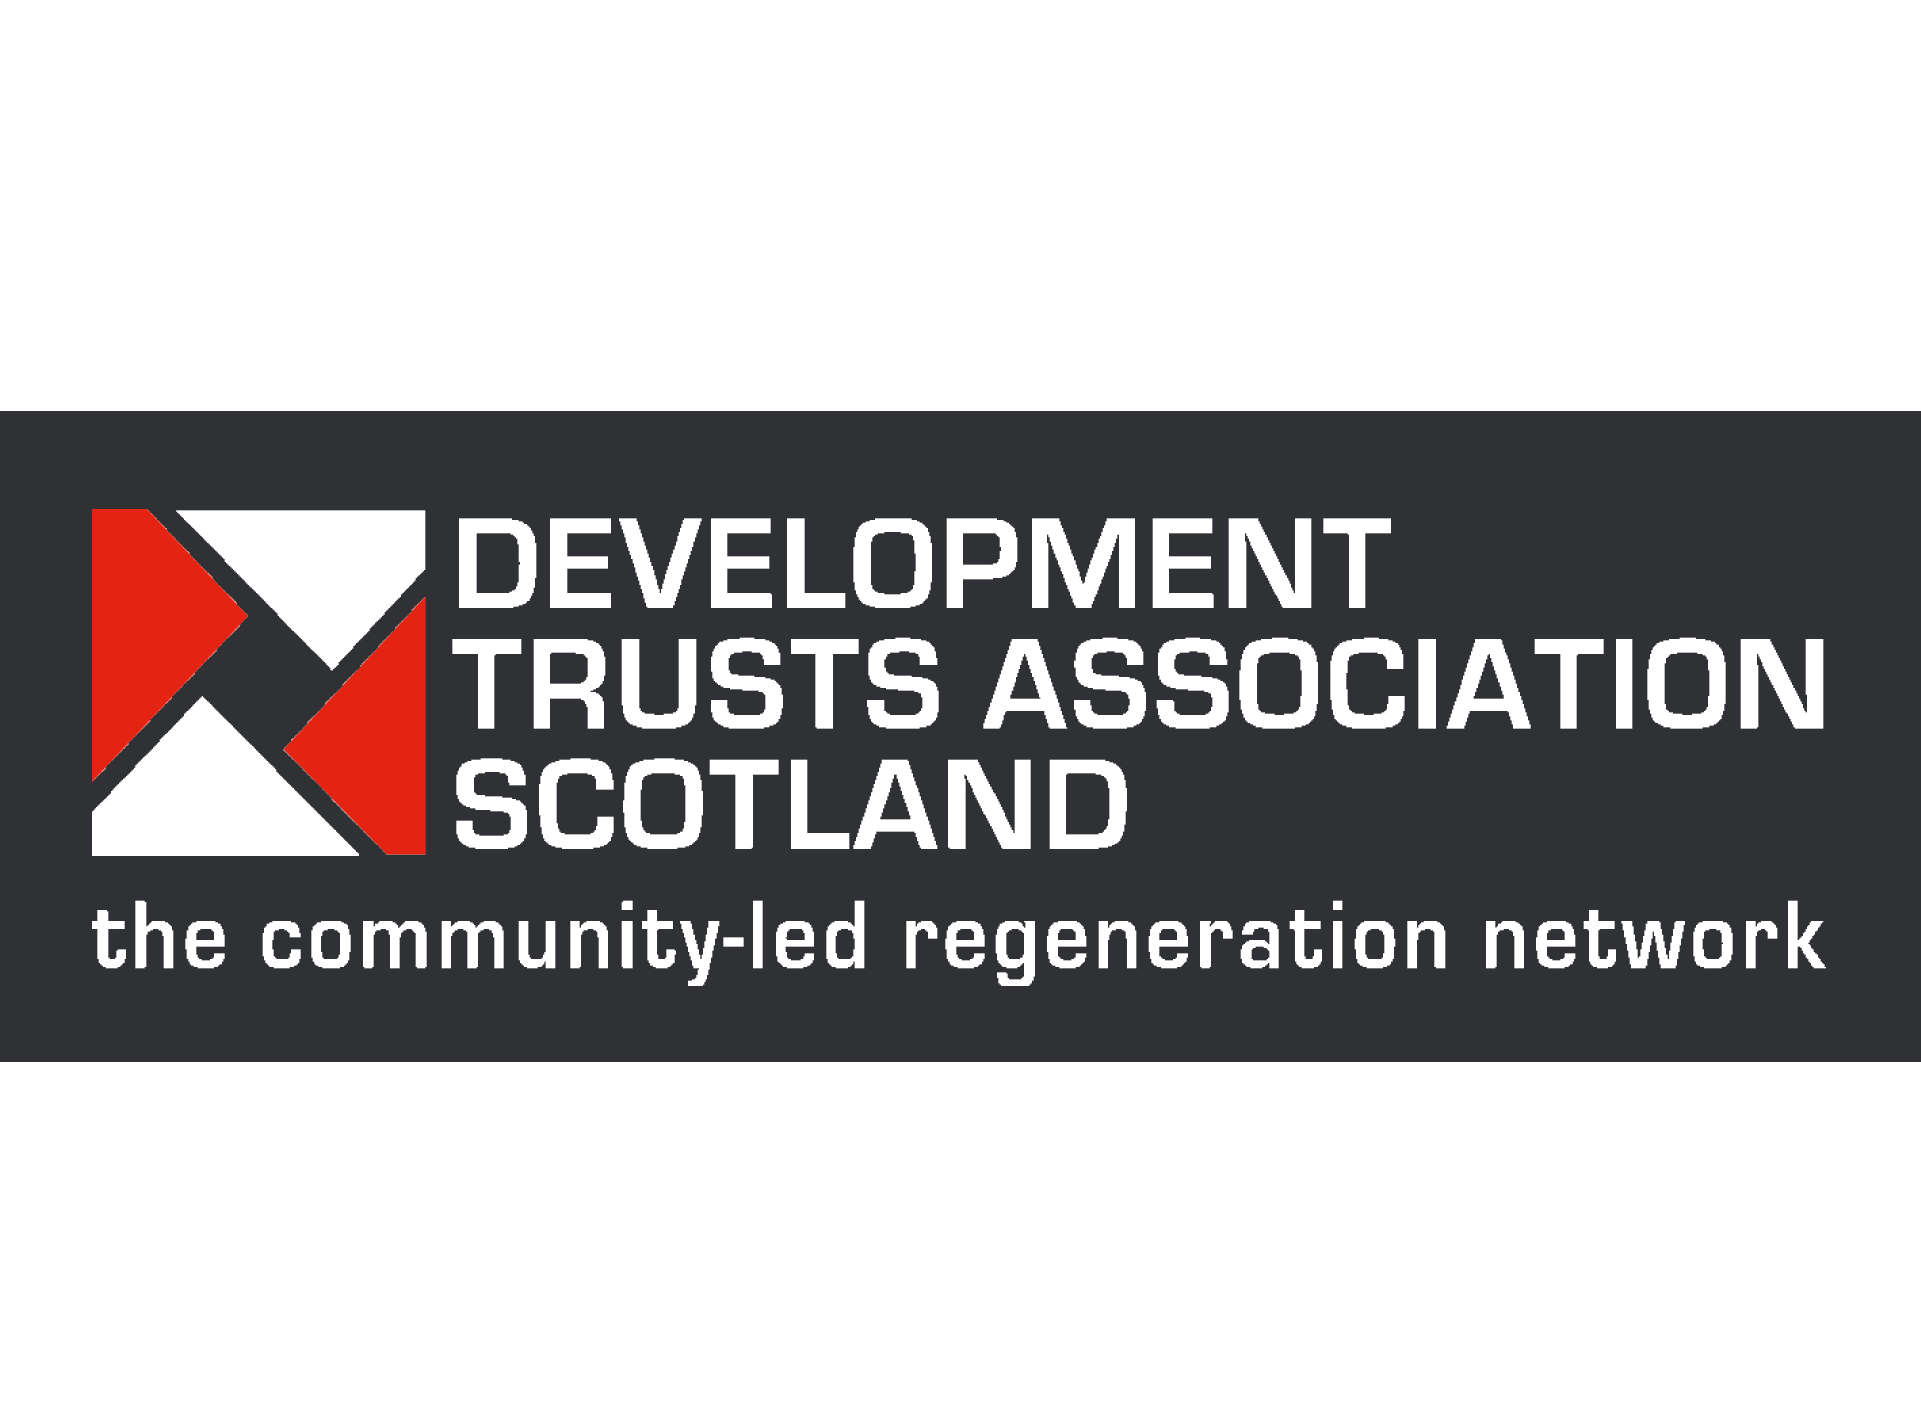 Development Trusts Association Scotland logo